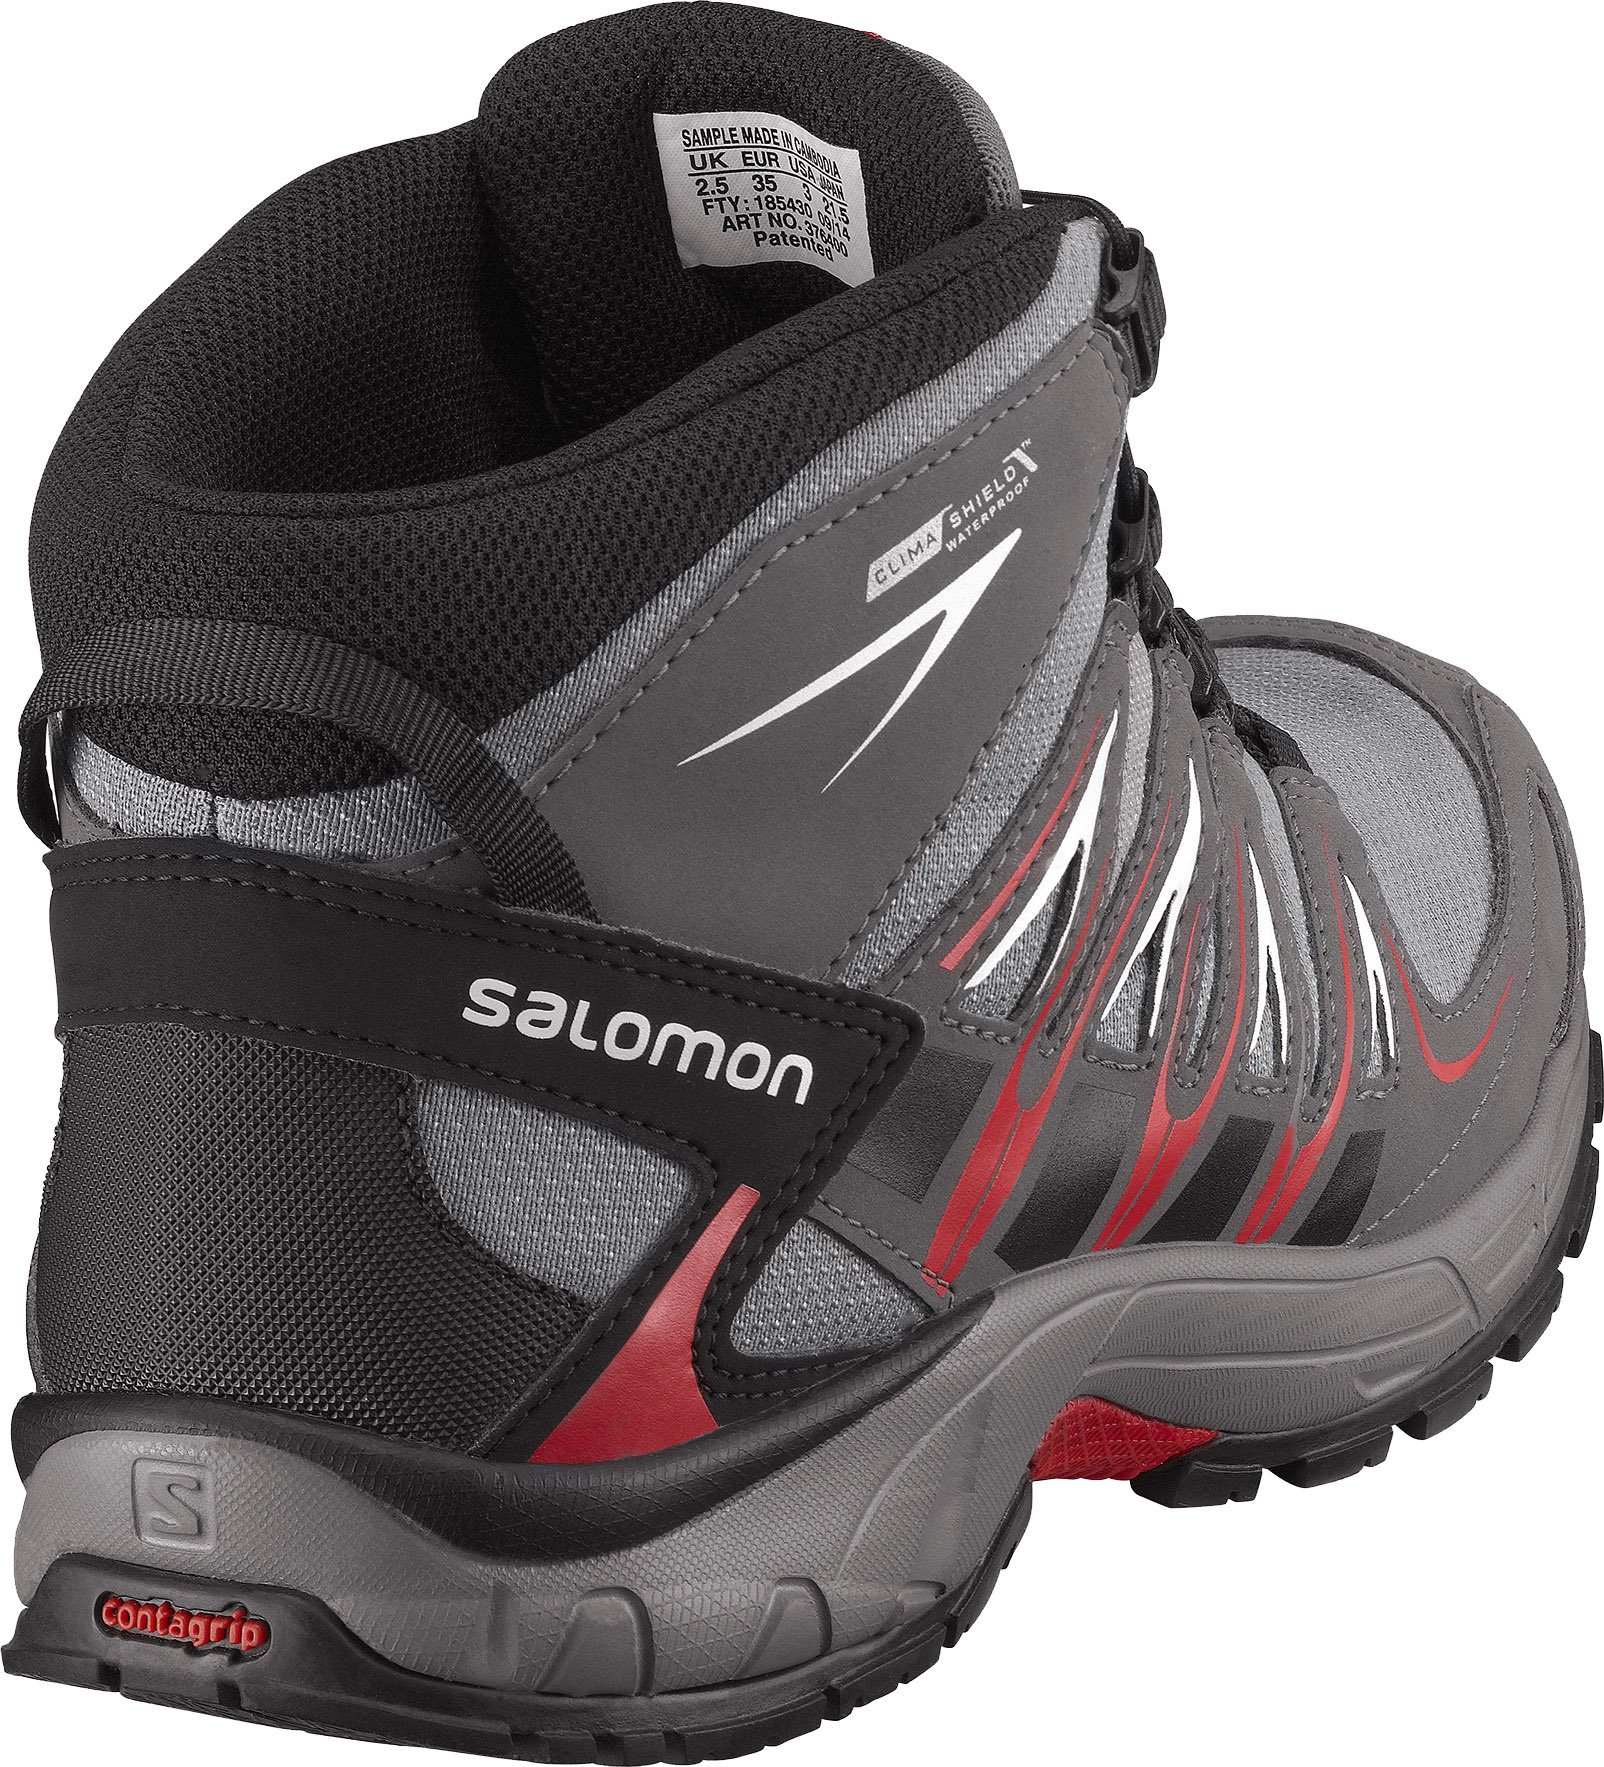 Salomon XA Pro 3D Mid CSWP Shoes - Children to Youths 78db3a0d407a